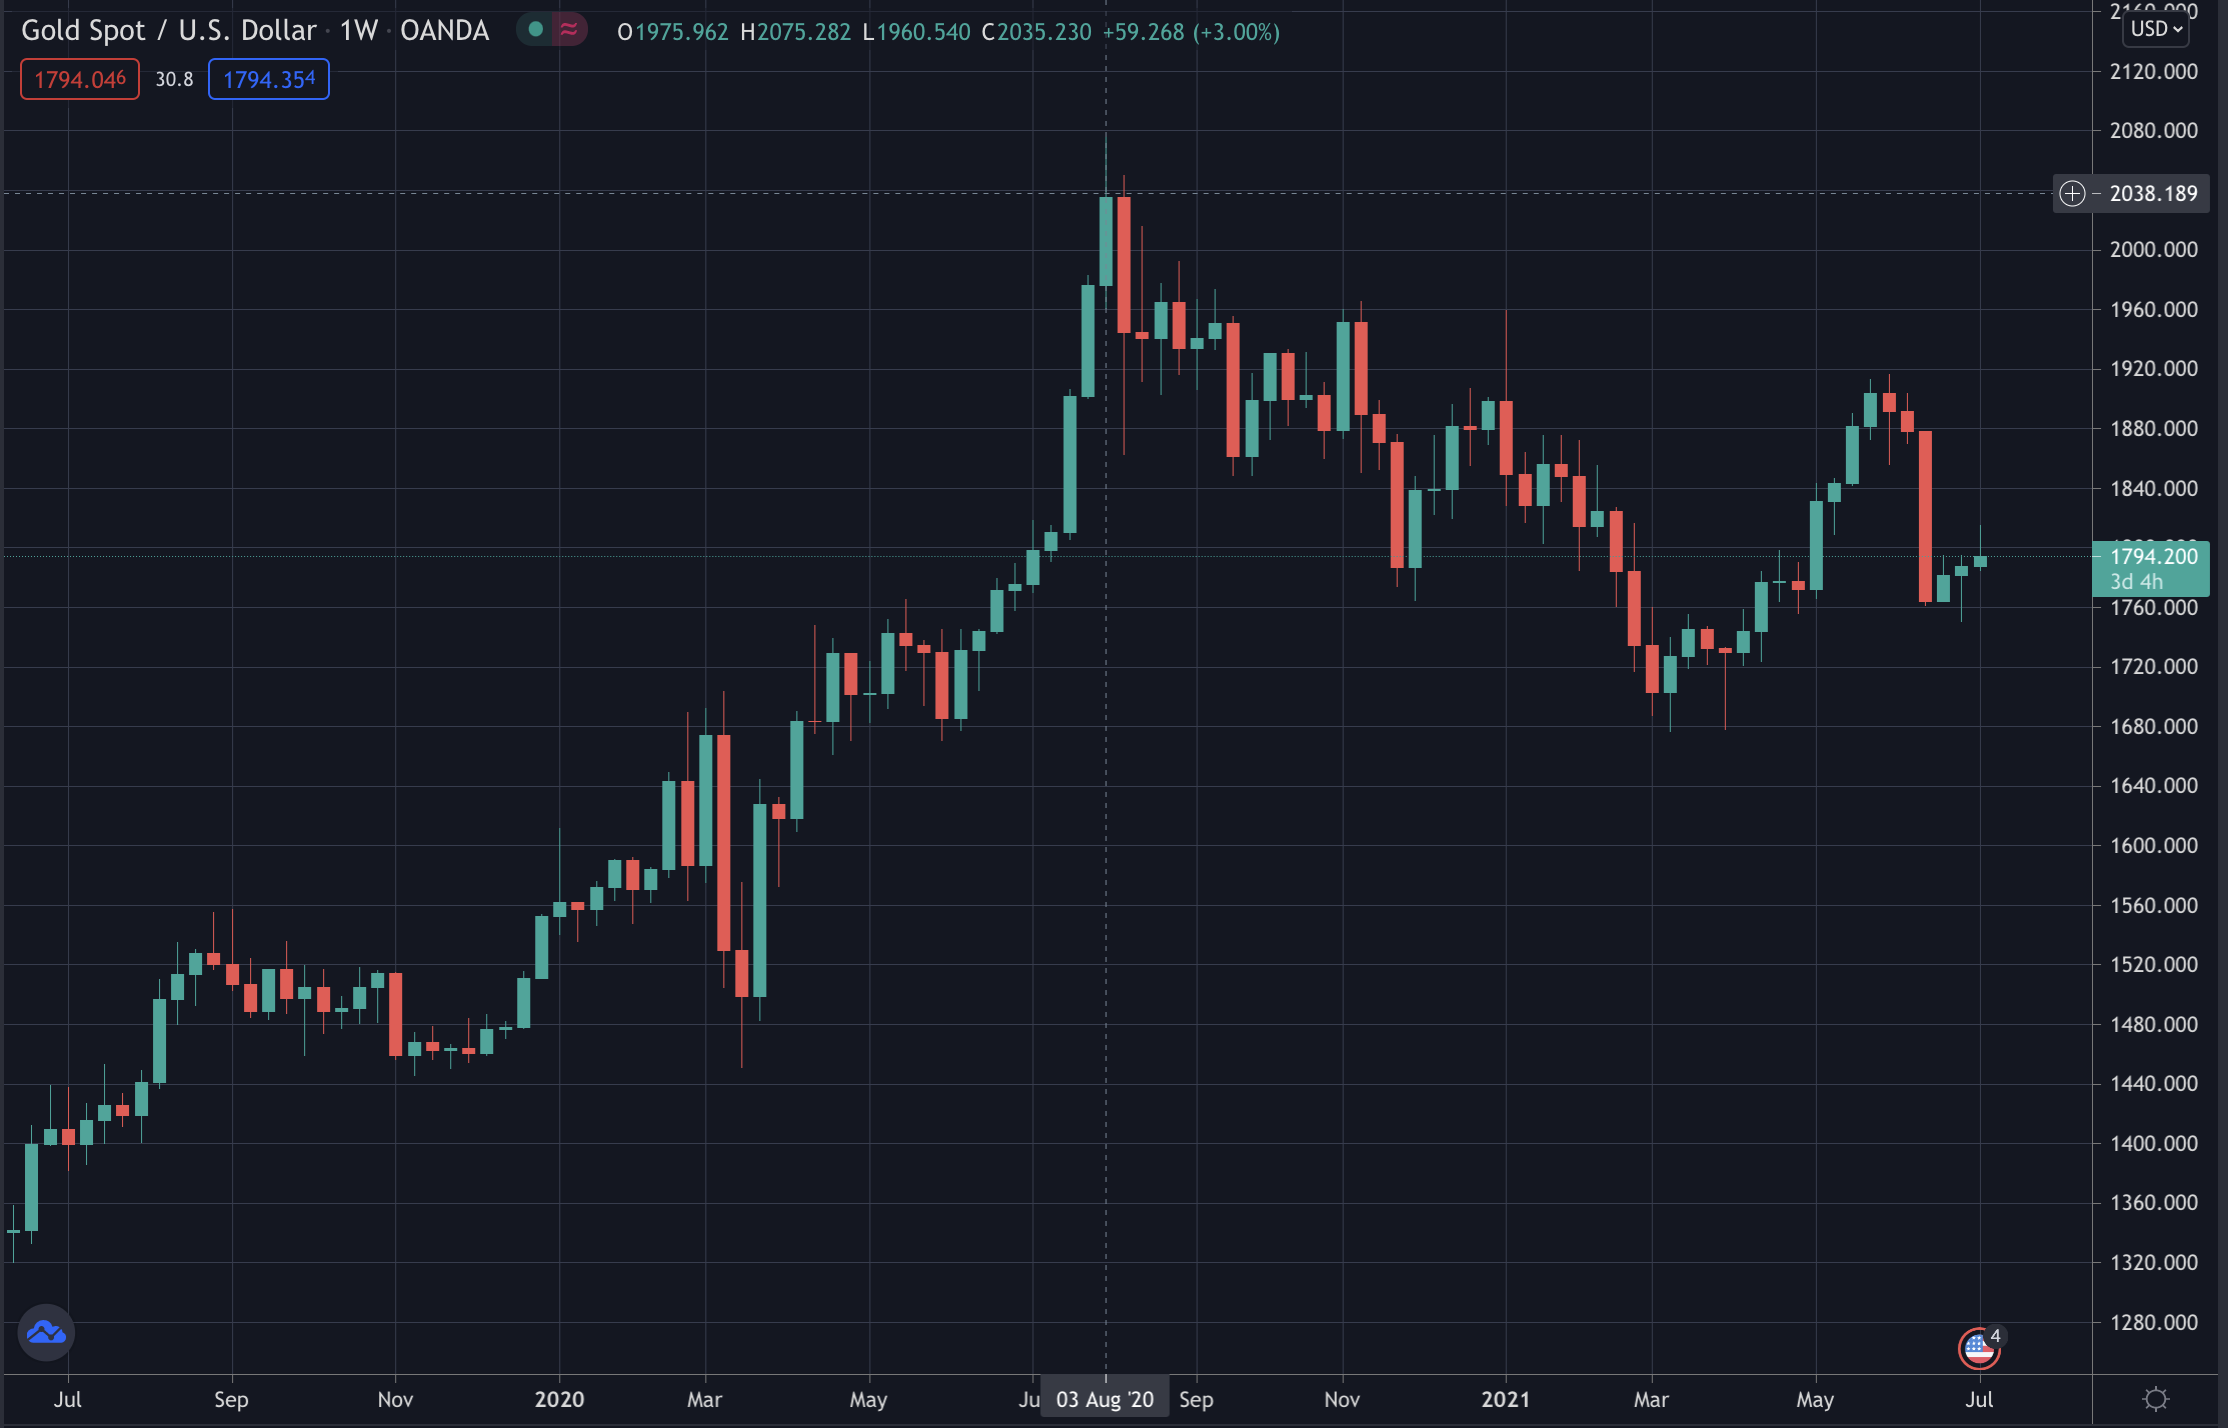 Gold's price, July 2021